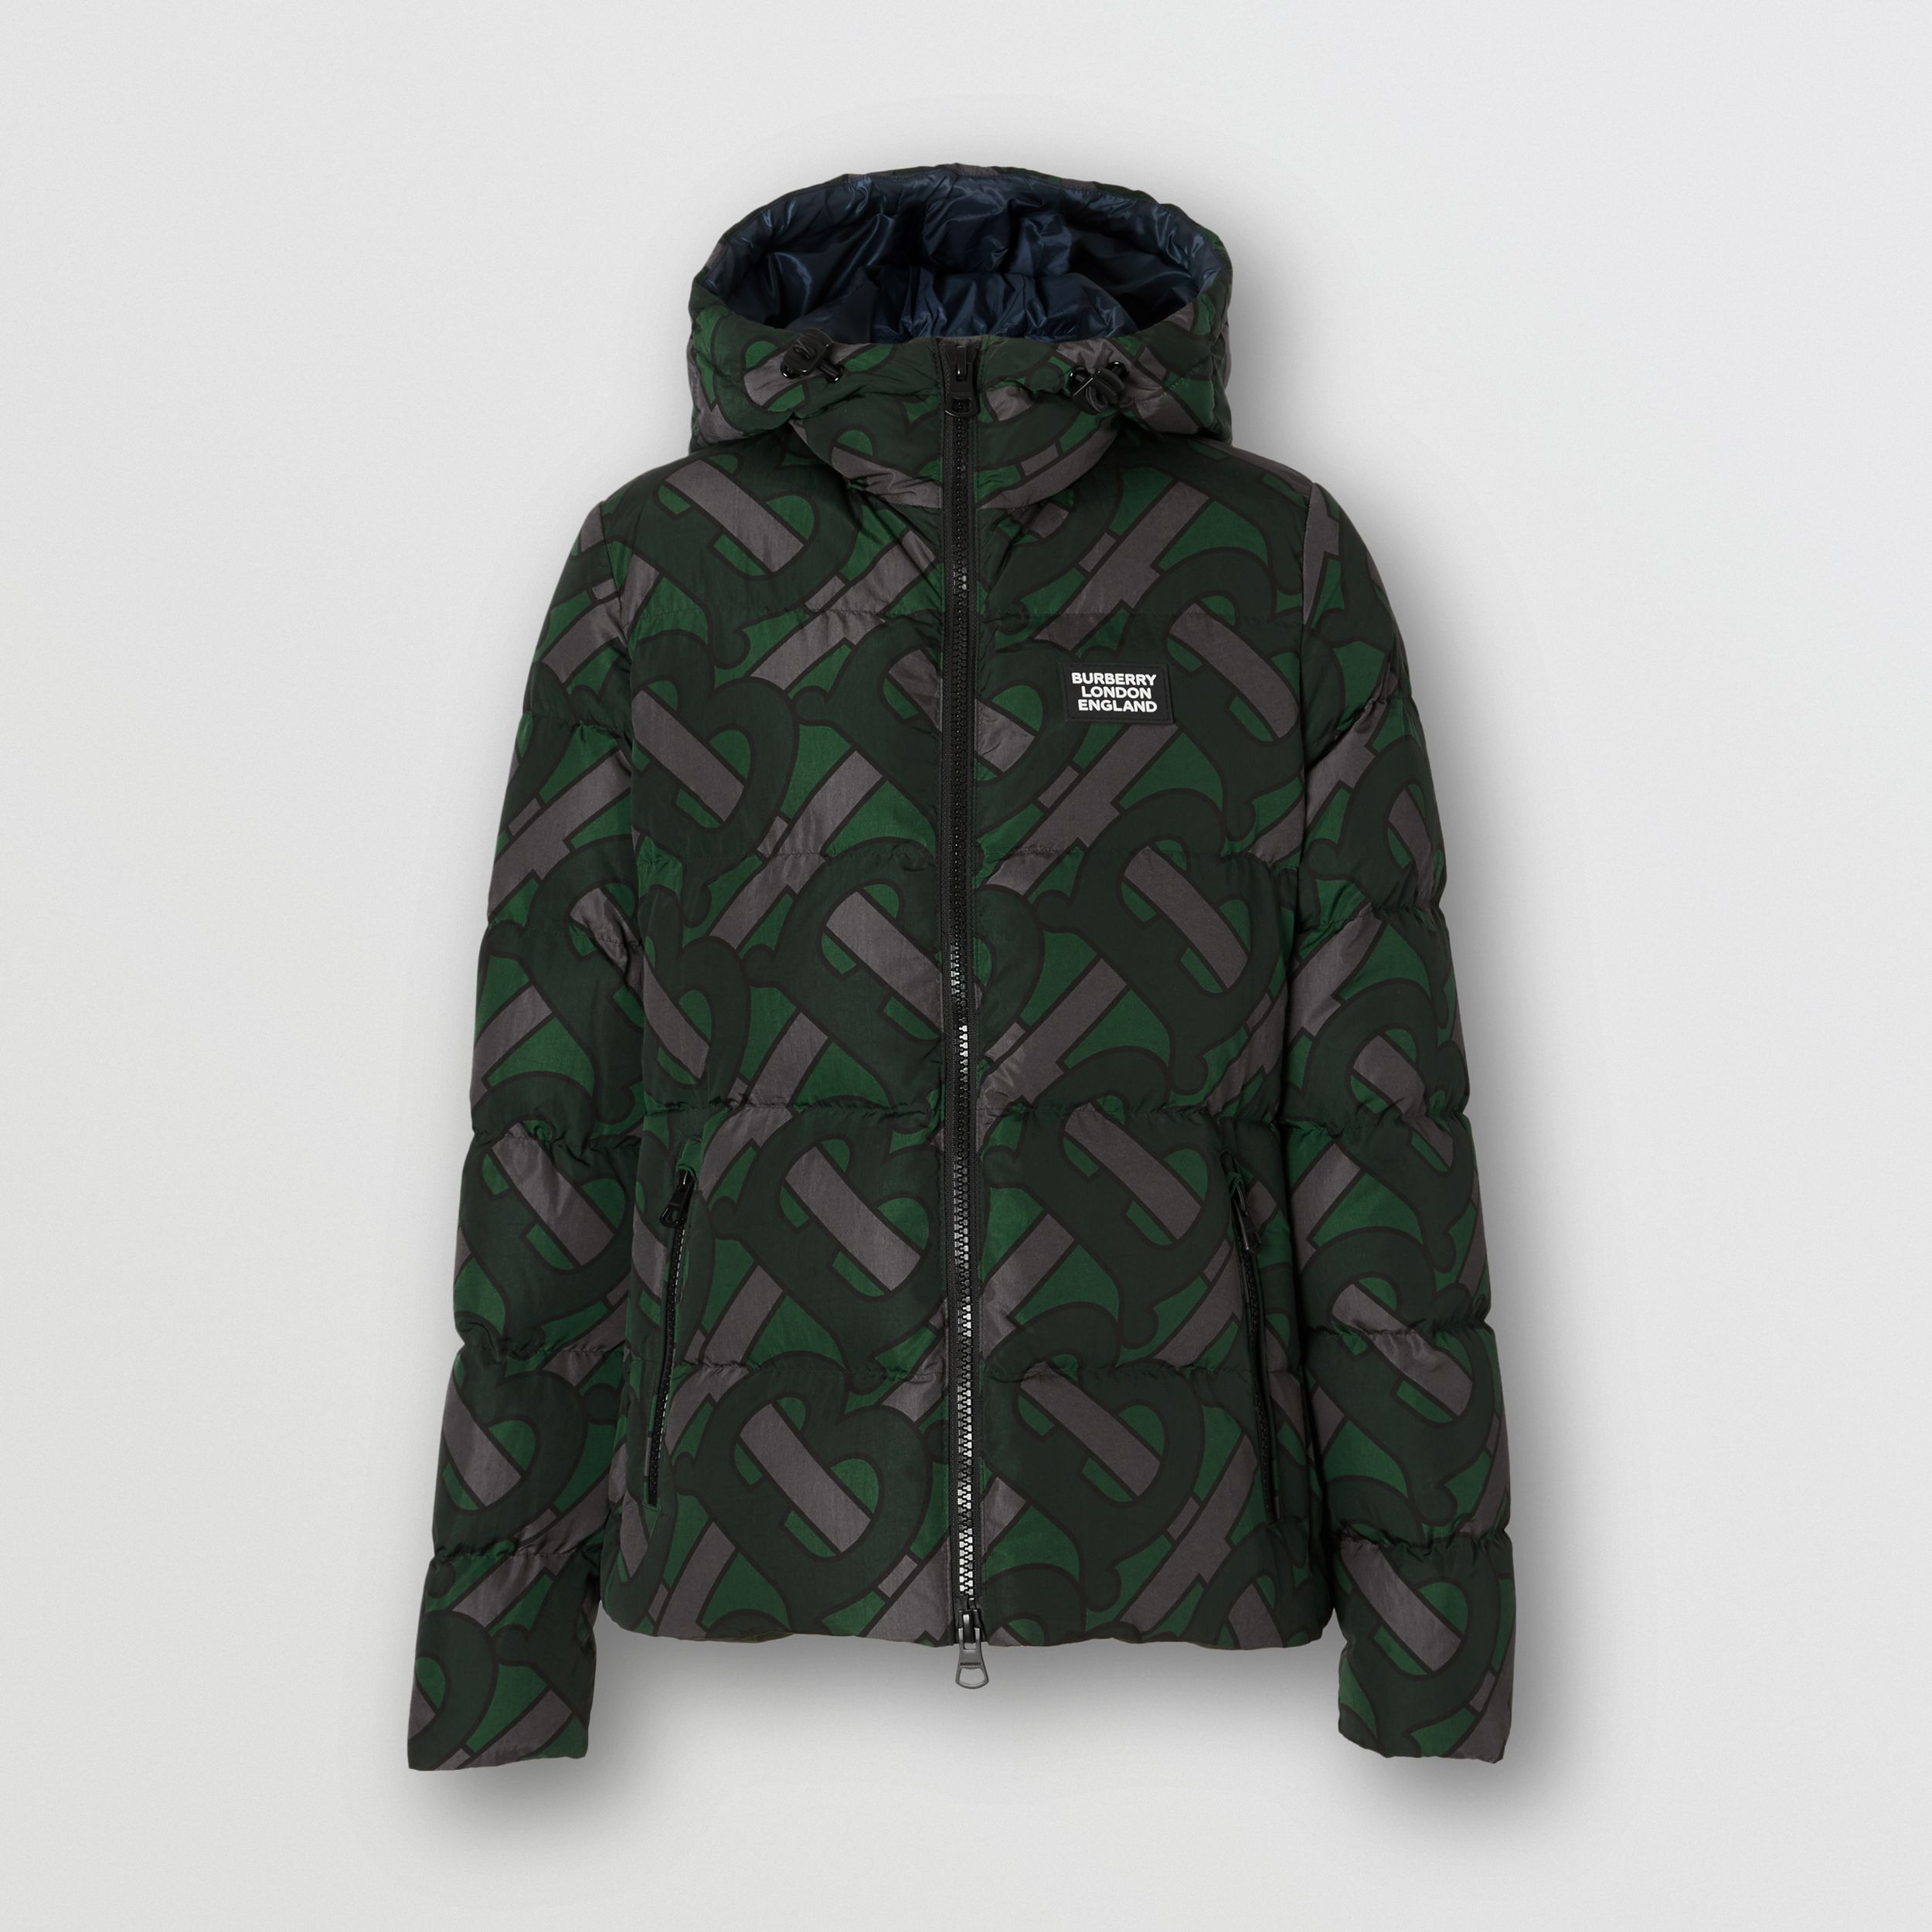 Monogram Print Hooded Puffer Jacket in Forest Green - Women | Burberry - 1